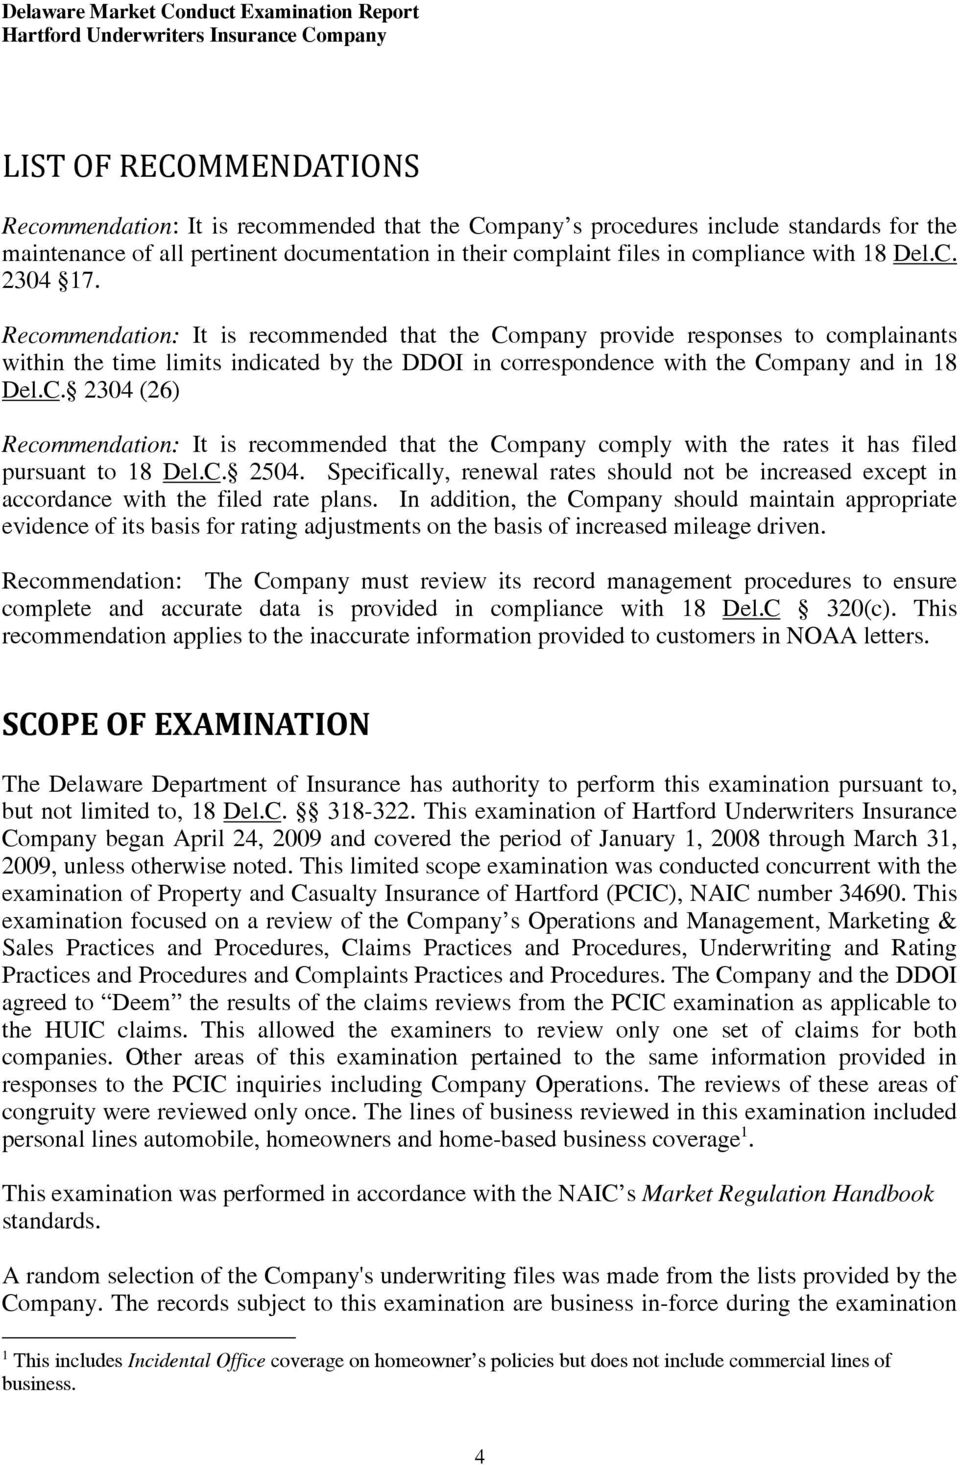 Recommendation: It is recommended that the Company provide responses to complainants within the time limits indicated by the DDOI in correspondence with the Company and in 18 Del.C. 2304 (26) Recommendation: It is recommended that the Company comply with the rates it has filed pursuant to 18 Del.